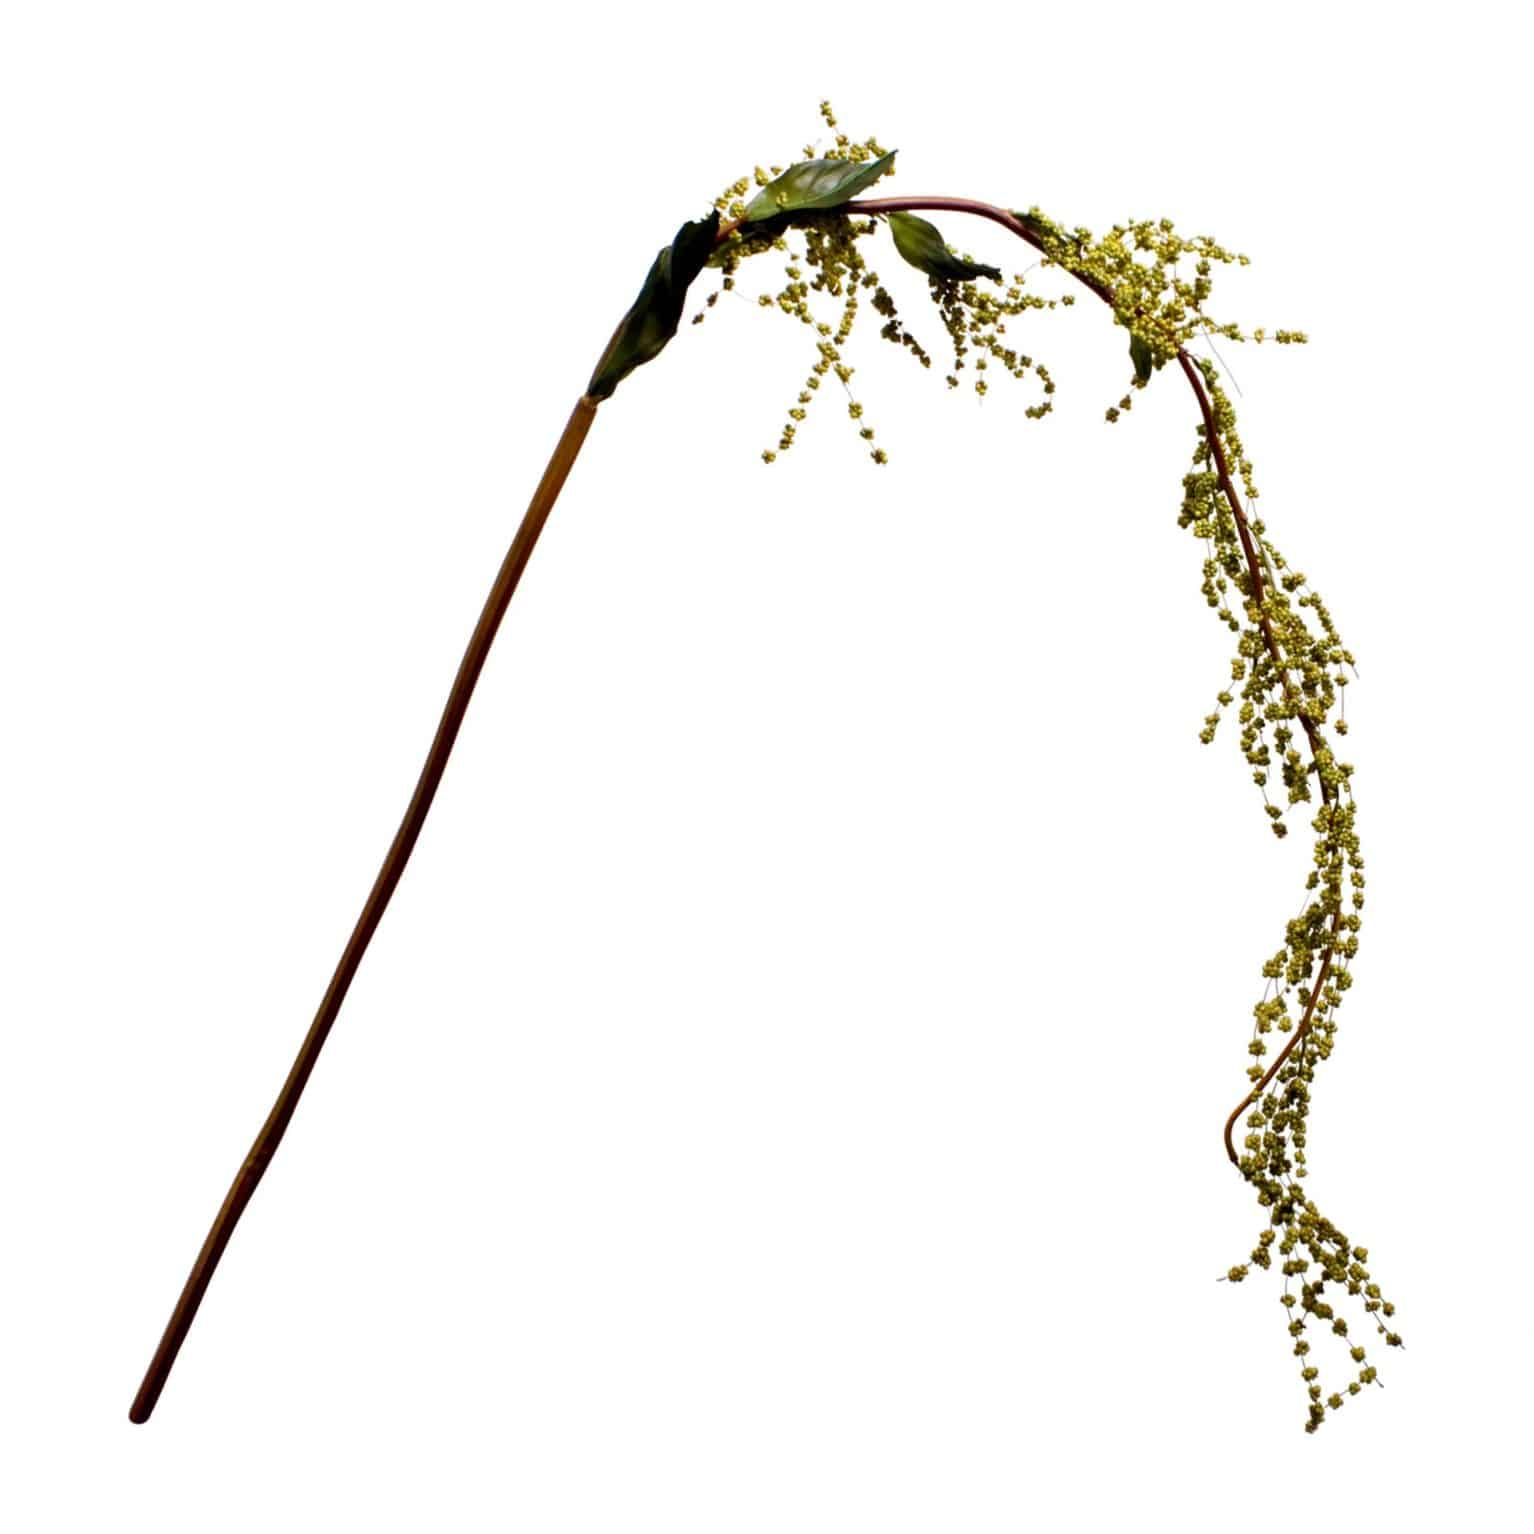 Natural looking knotweed stem spray is made of tiny clusters of berries. The soft green tones and leafs add authenticity to you arrangements.